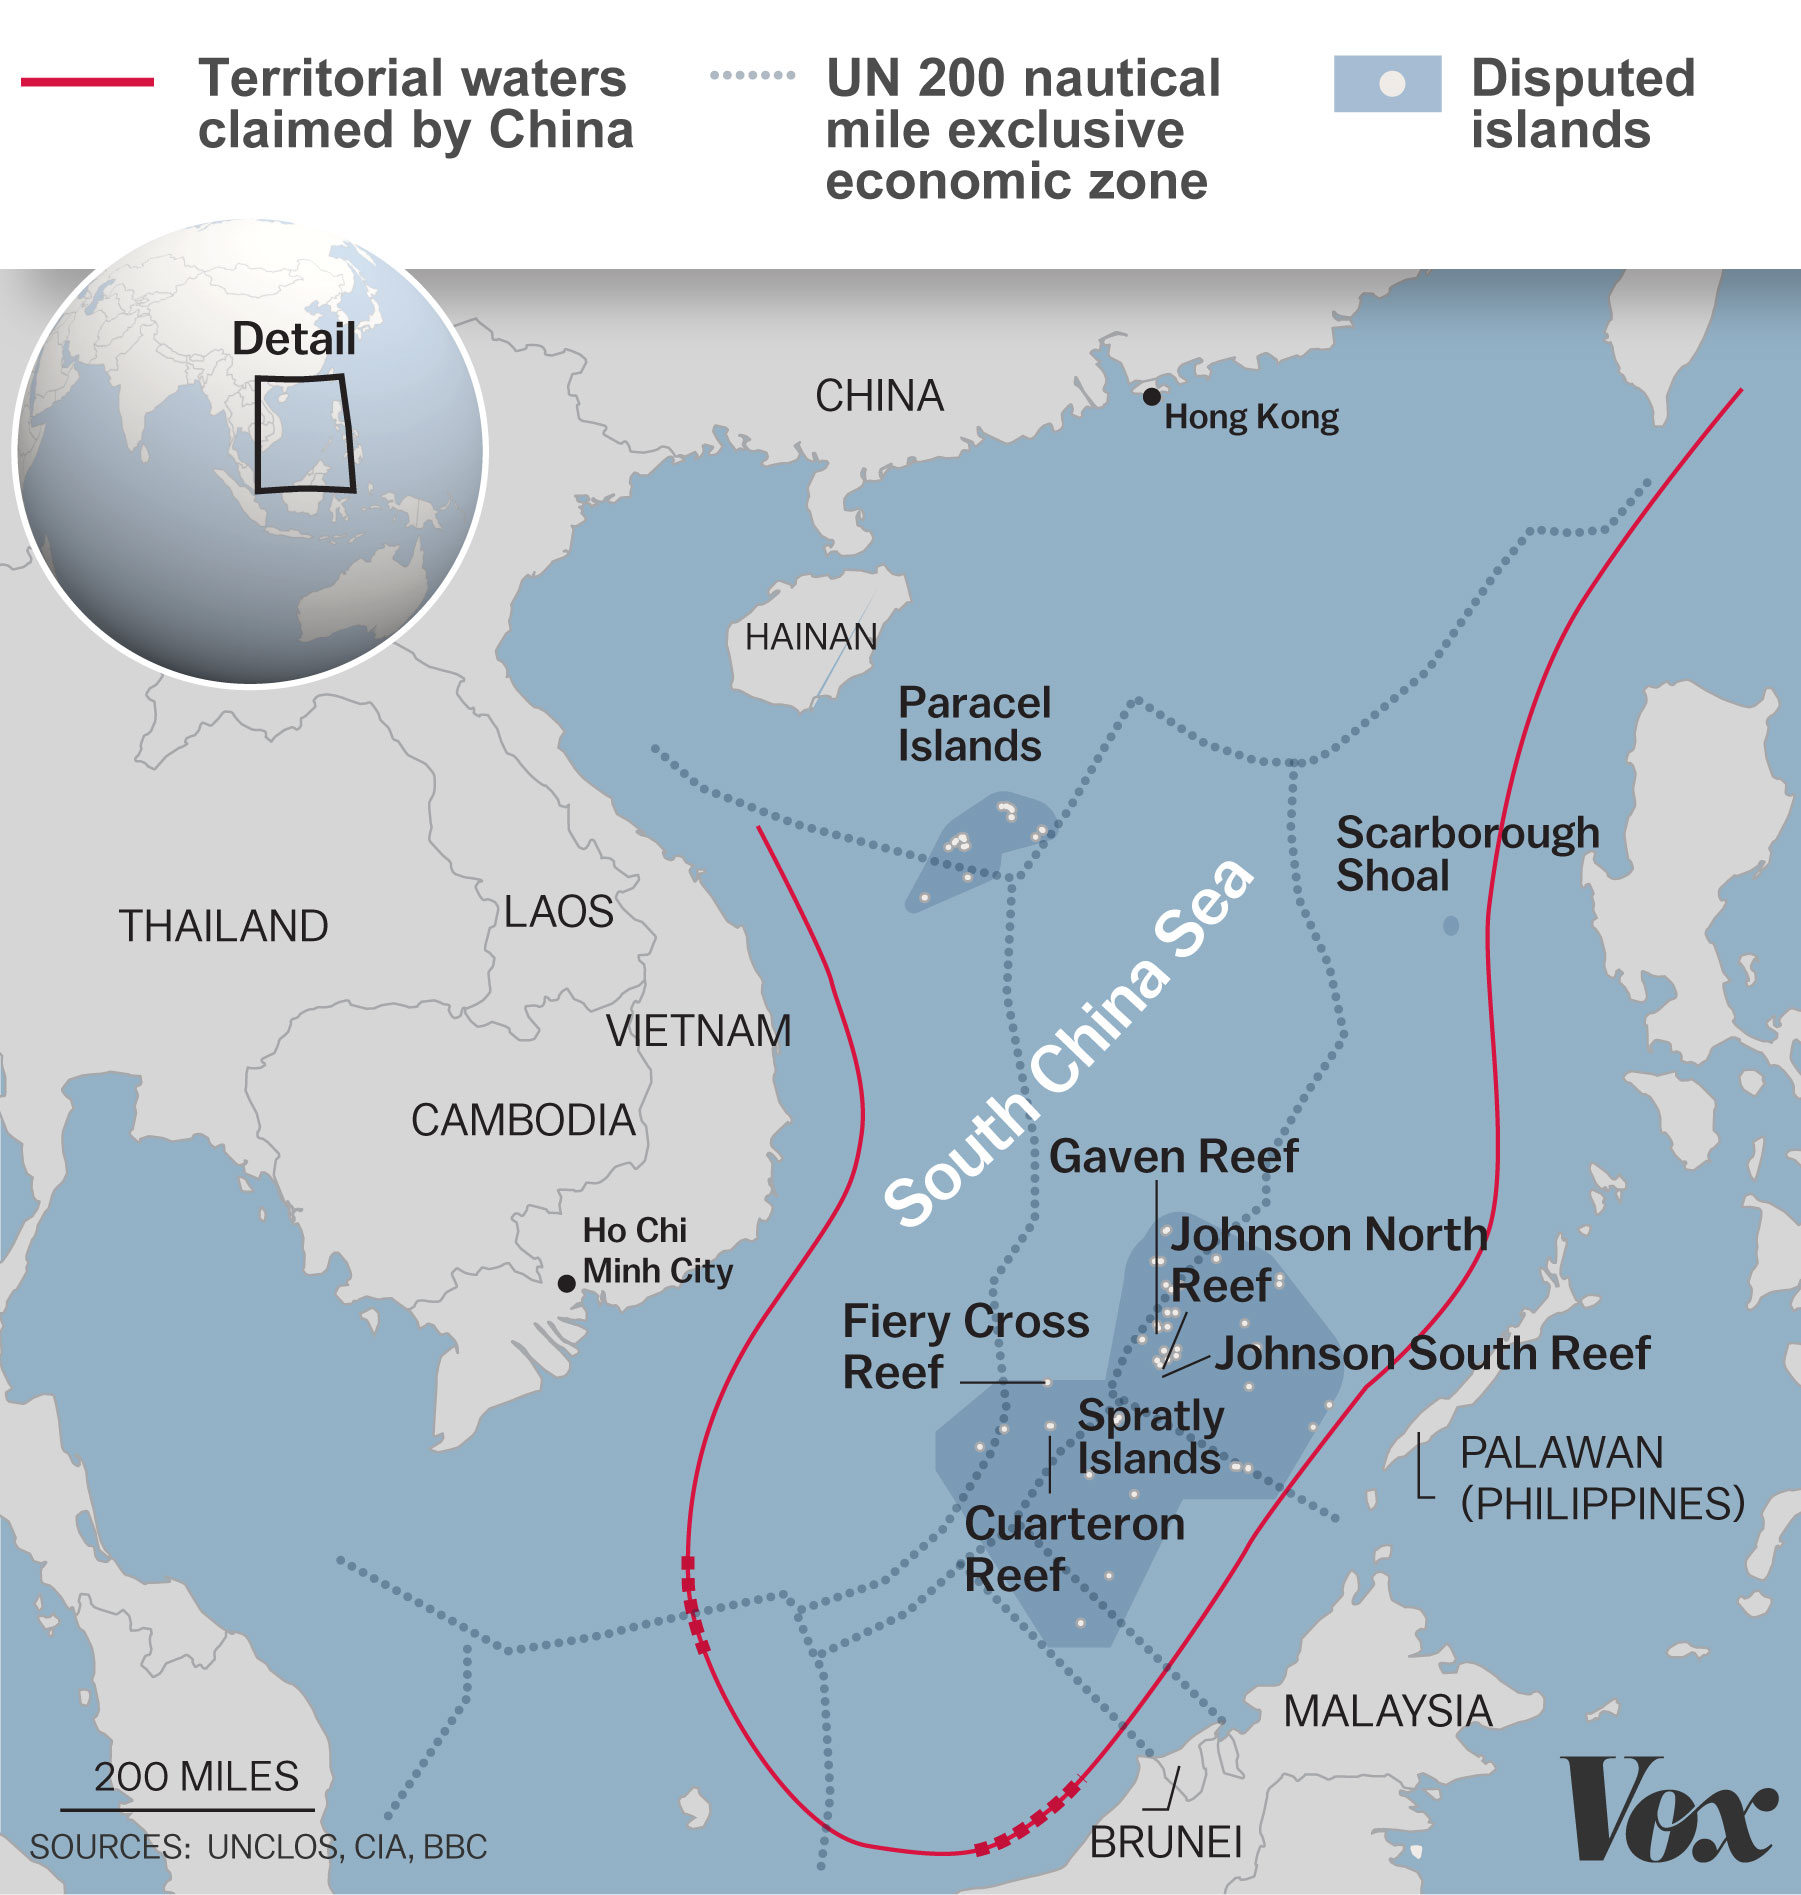 The Us Has Been Sending Us Navy Vessels Through The South China Sea And Ignoring Beijing S Attempts To Control Aire Over Them Both In Defense Of The